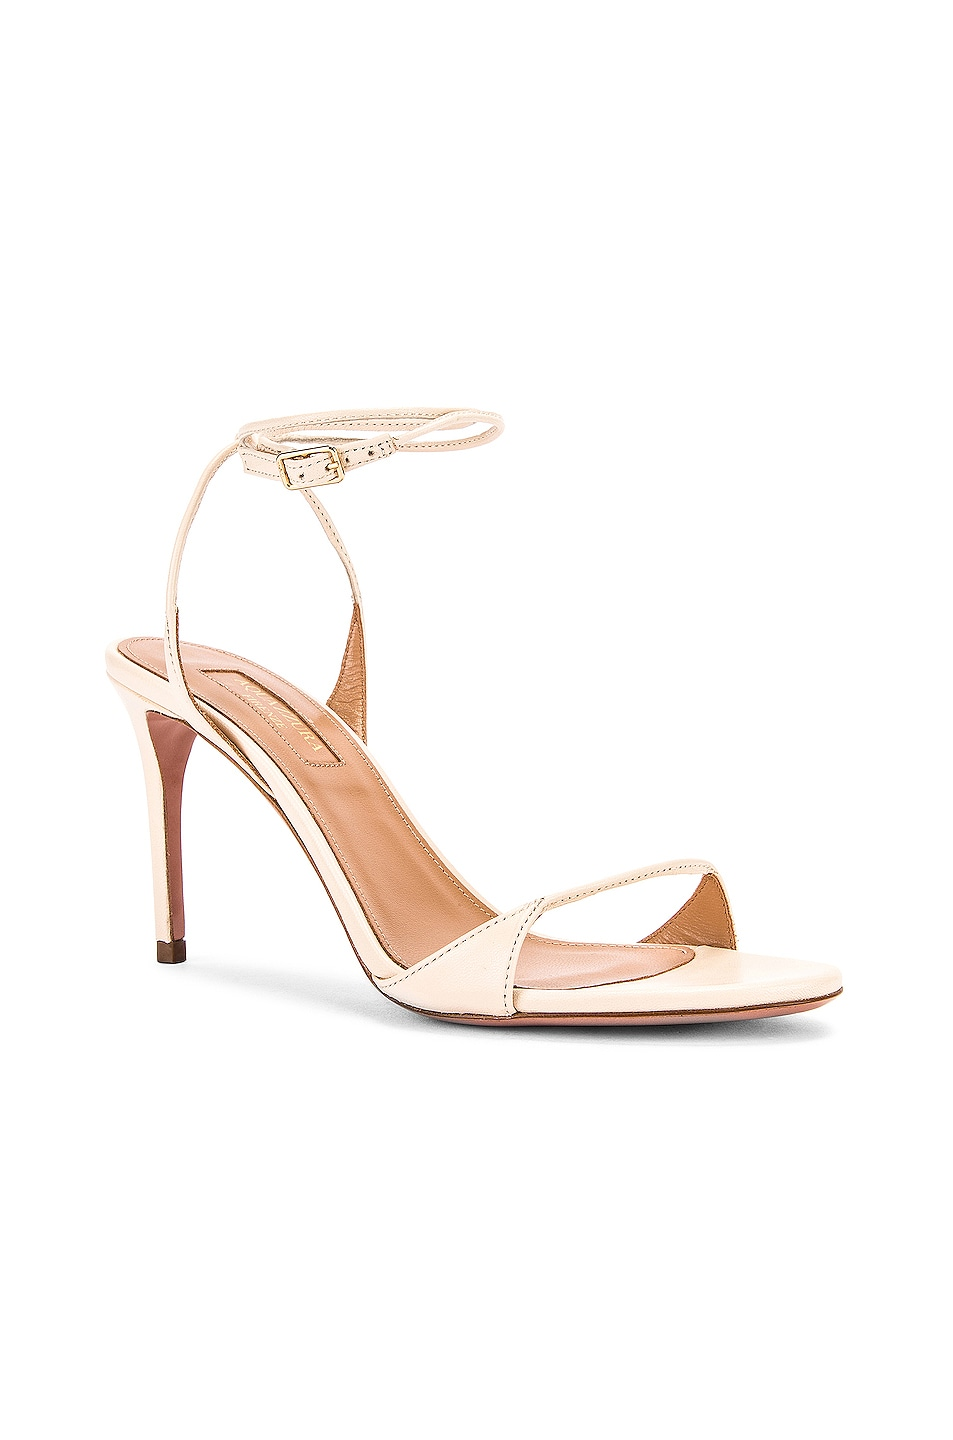 Image 2 of Aquazzura Minute 85 Sandal in Cream